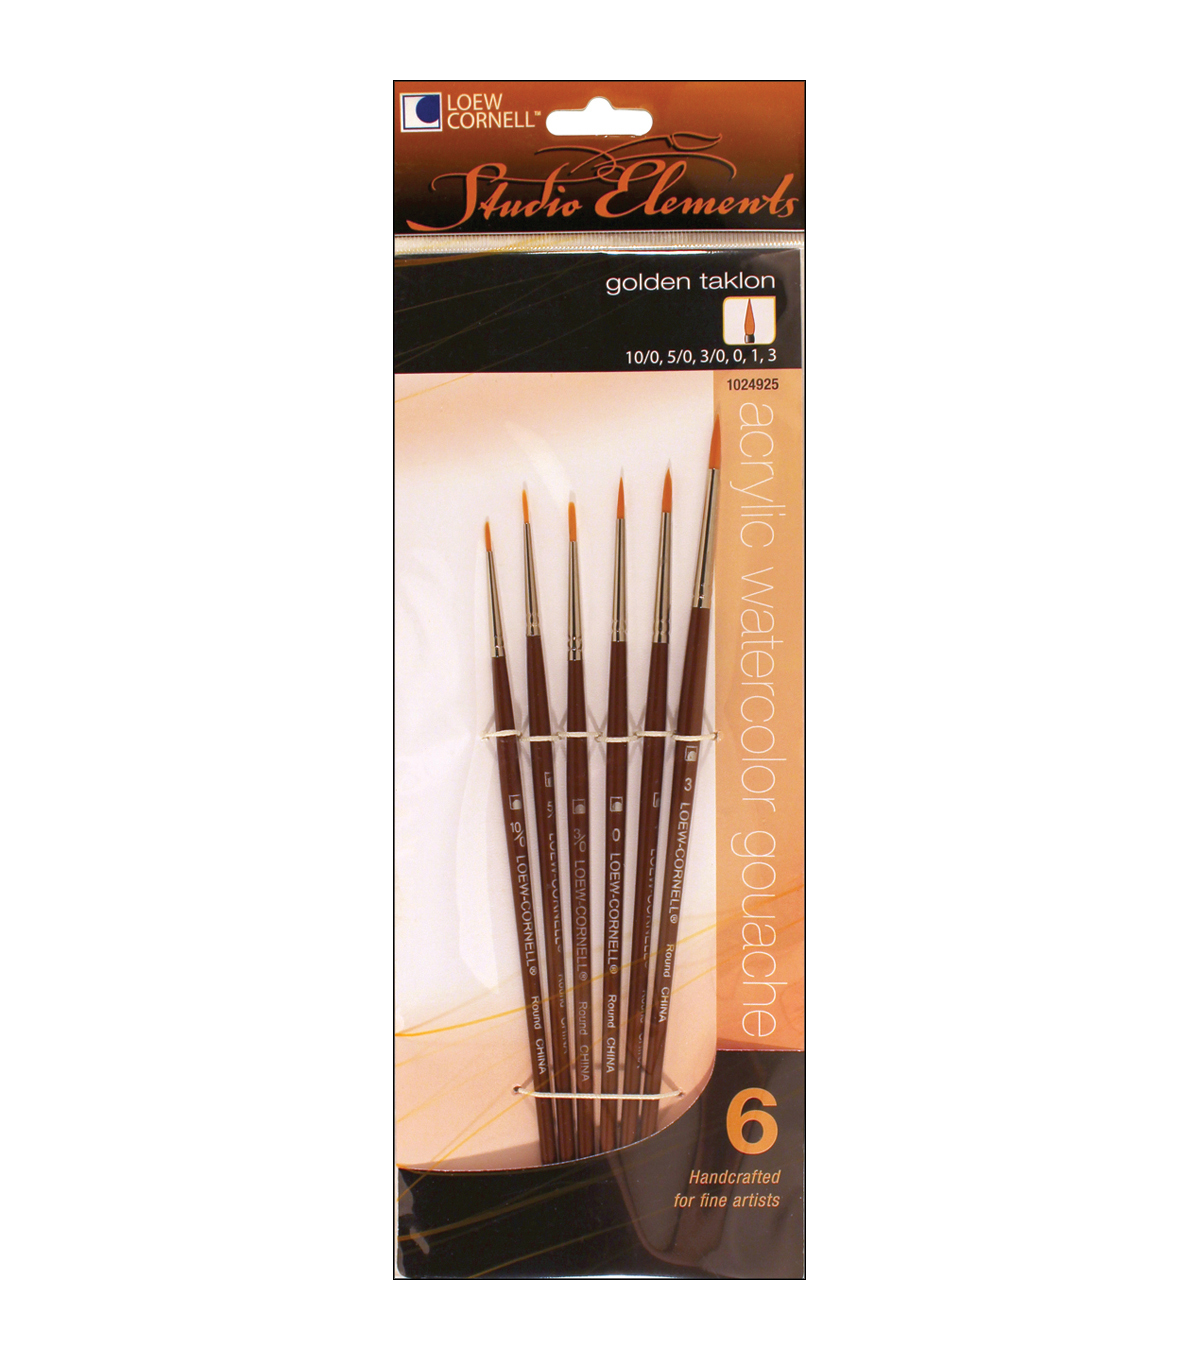 Loew-Cornell Studio Elements 6 pk Round Golden Taklon Brushes